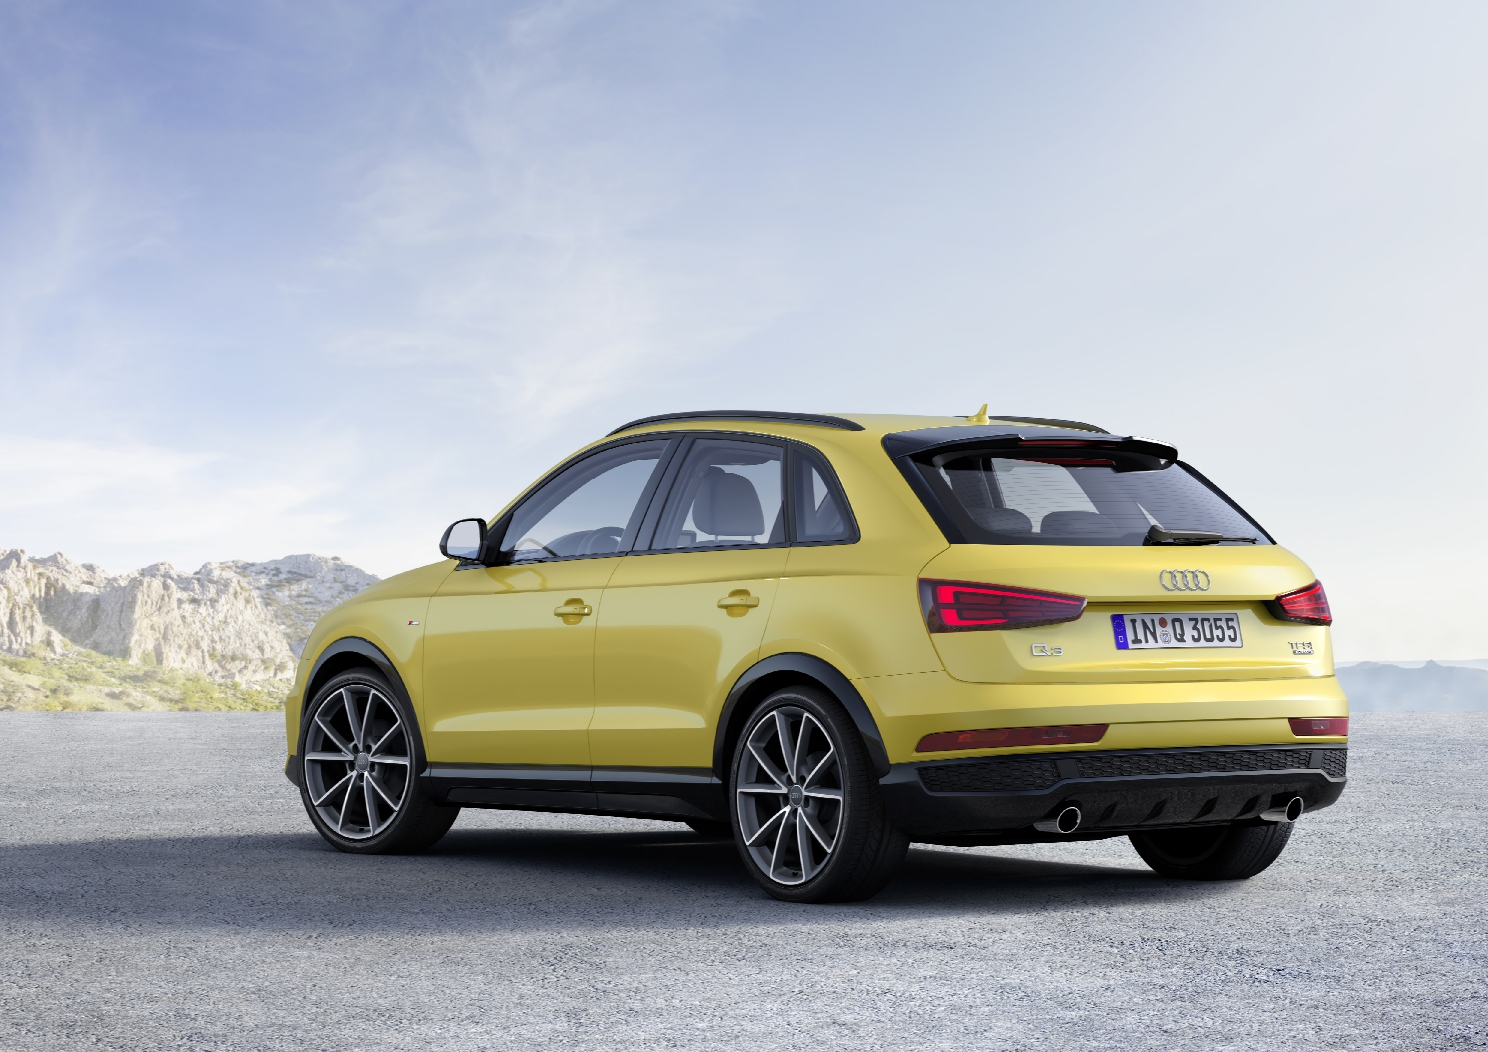 Audi Q3 2.0 TFSI Static photo, Colour: Tukan Yellow